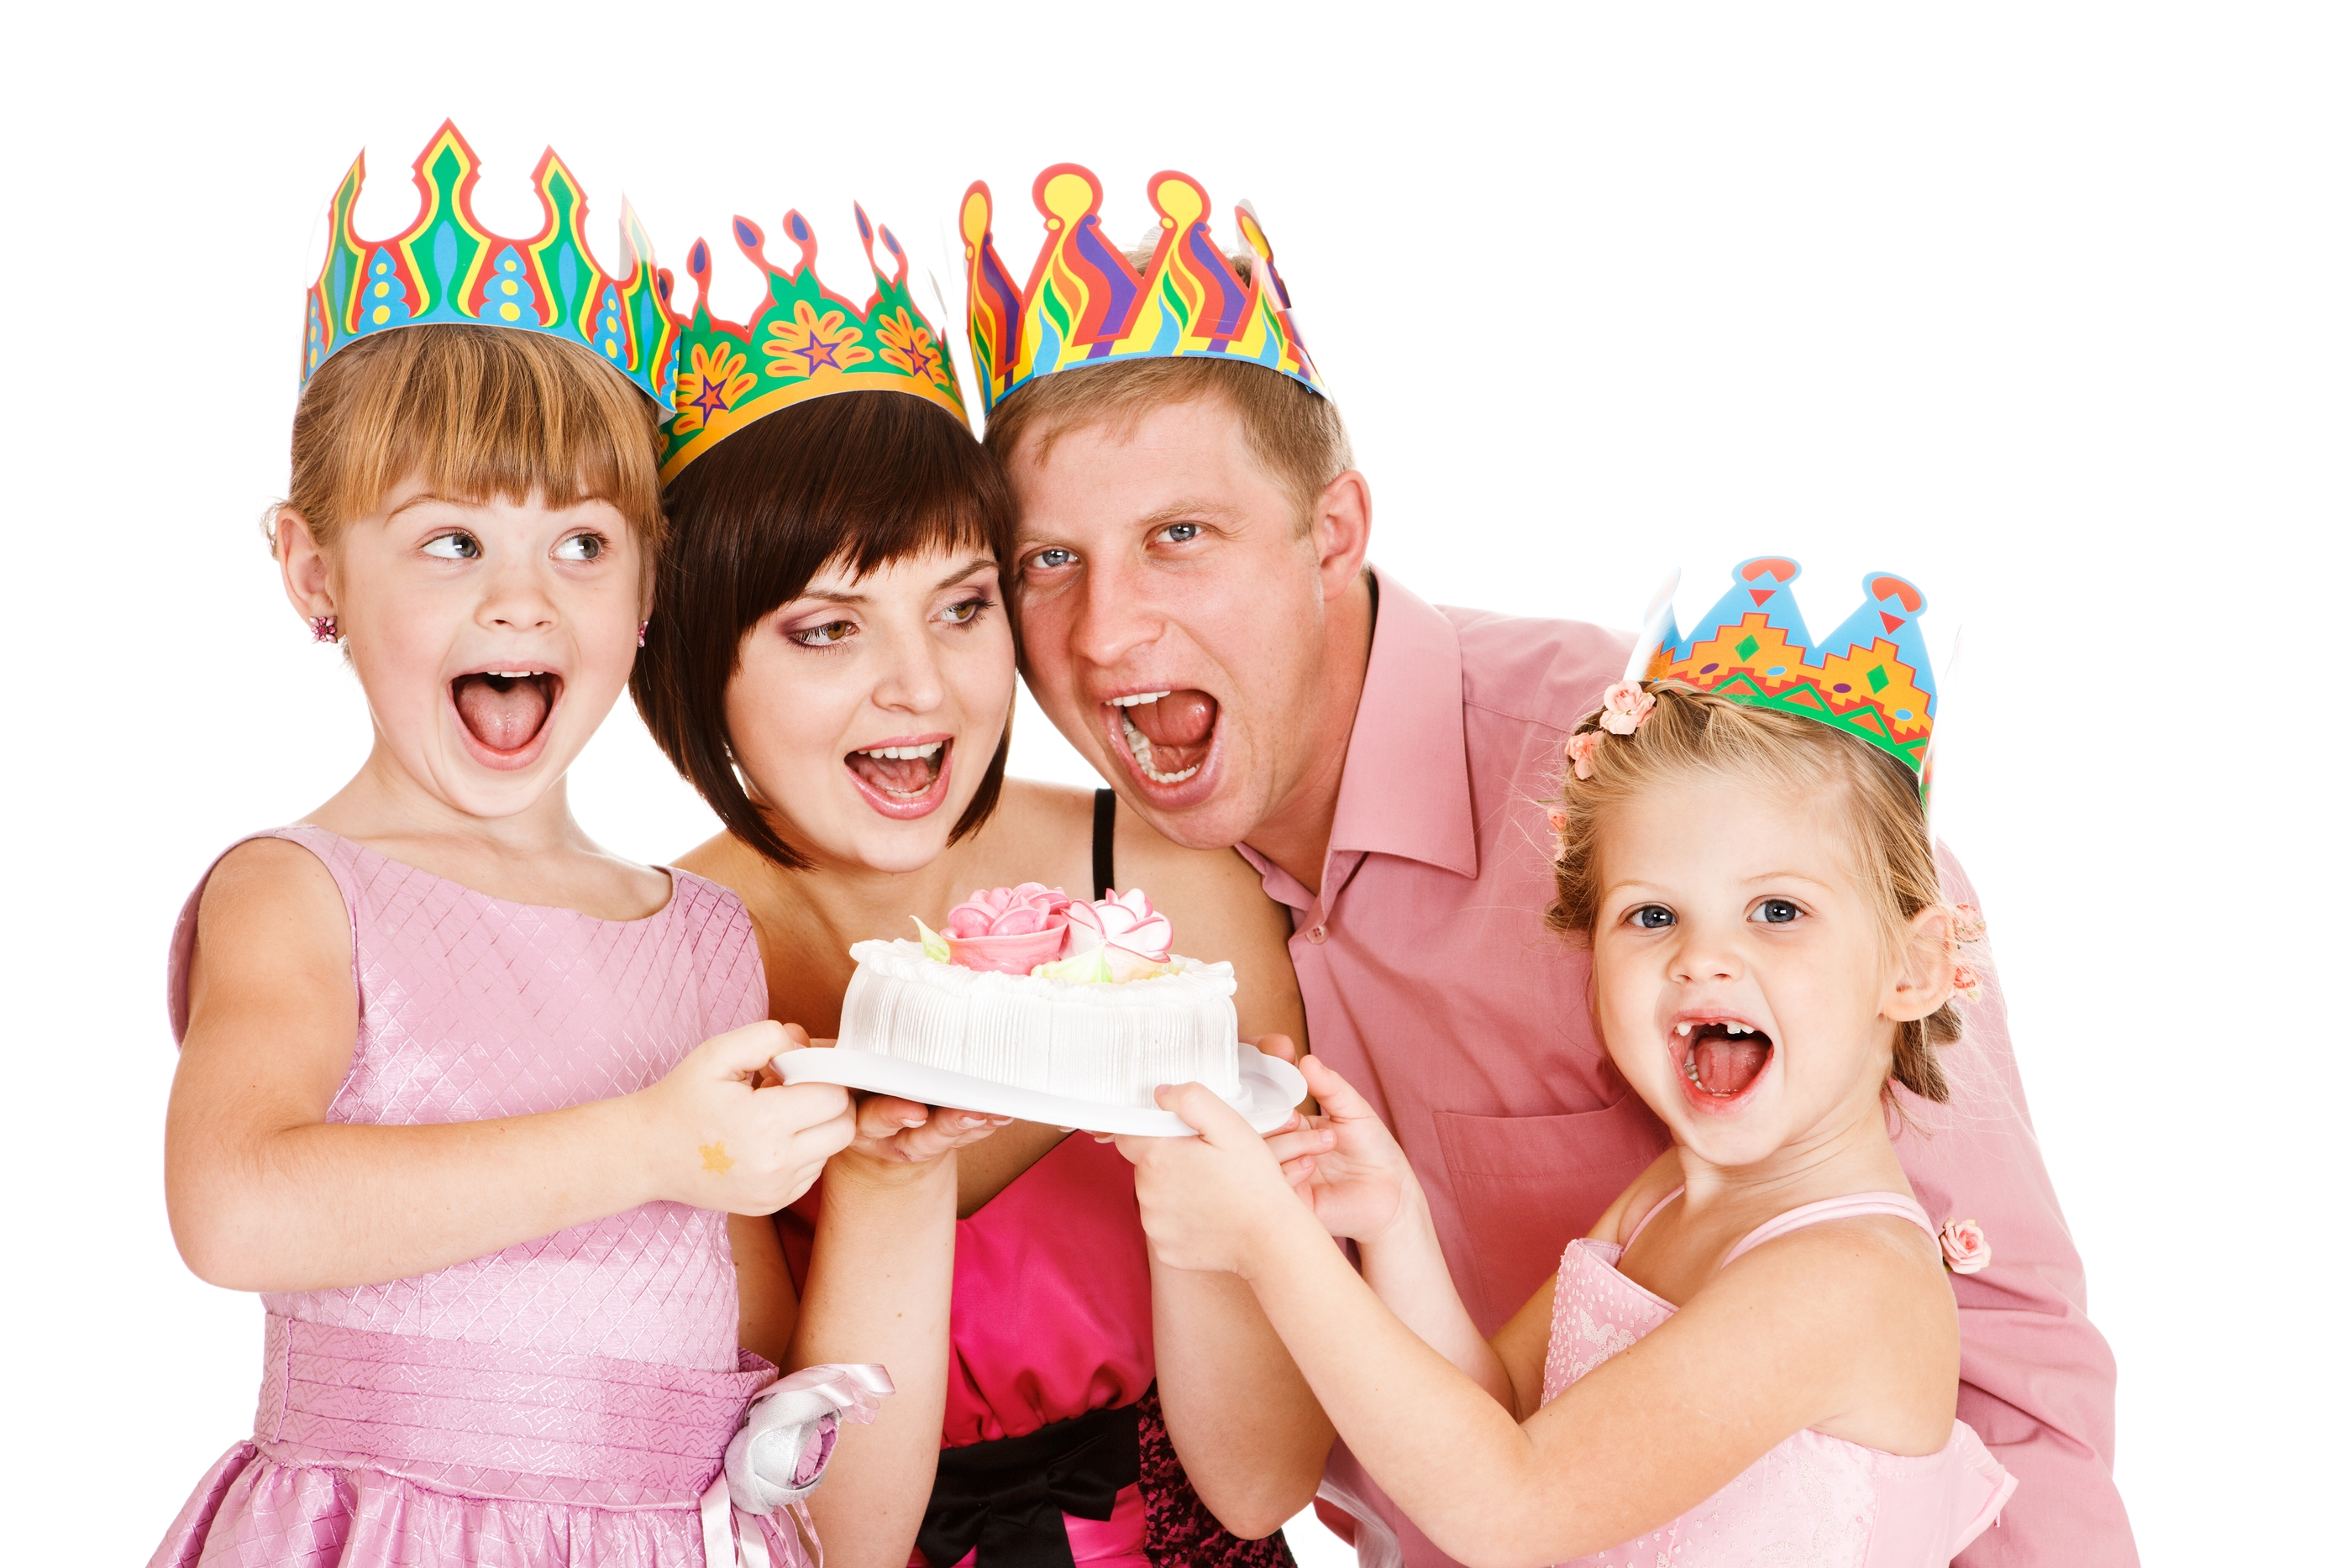 bigstock-Cheerful-family-holding-cake-24821780